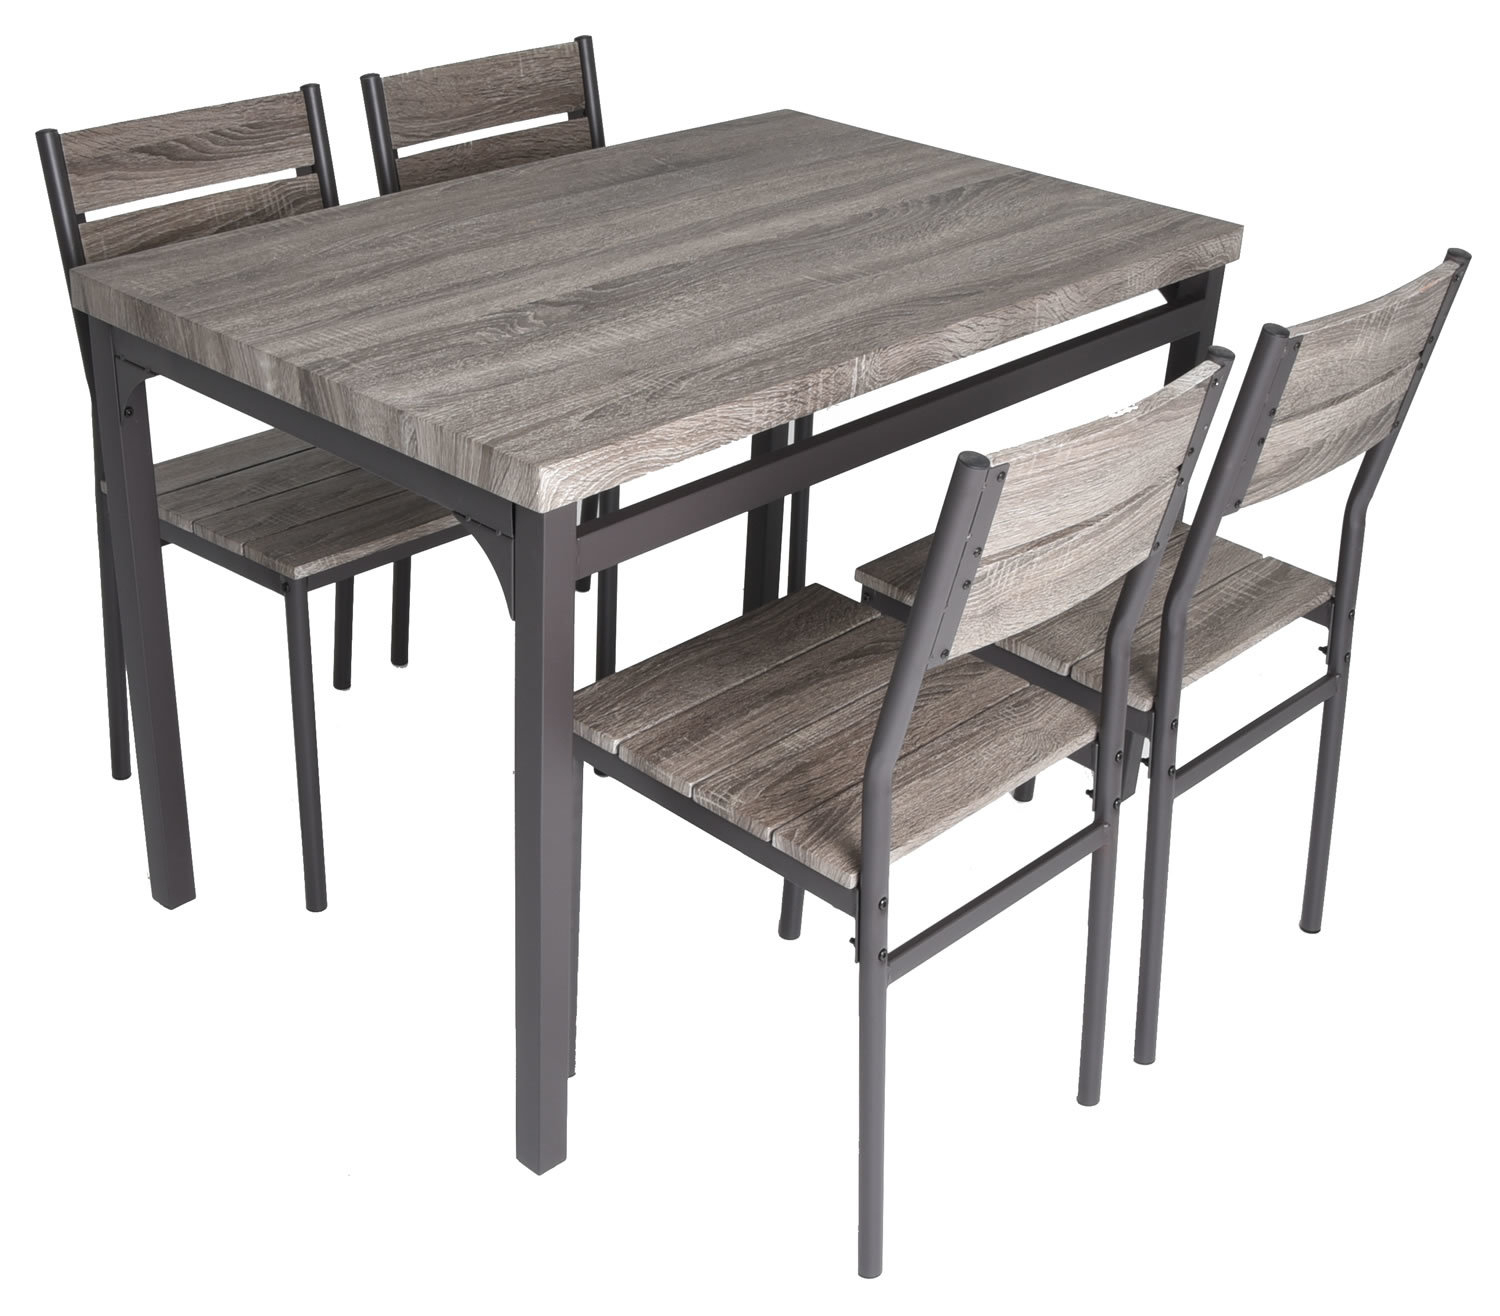 Emmeline 5 Piece Breakfast Nook Dining Set With Newest Mysliwiec 5 Piece Counter Height Breakfast Nook Dining Sets (View 8 of 20)